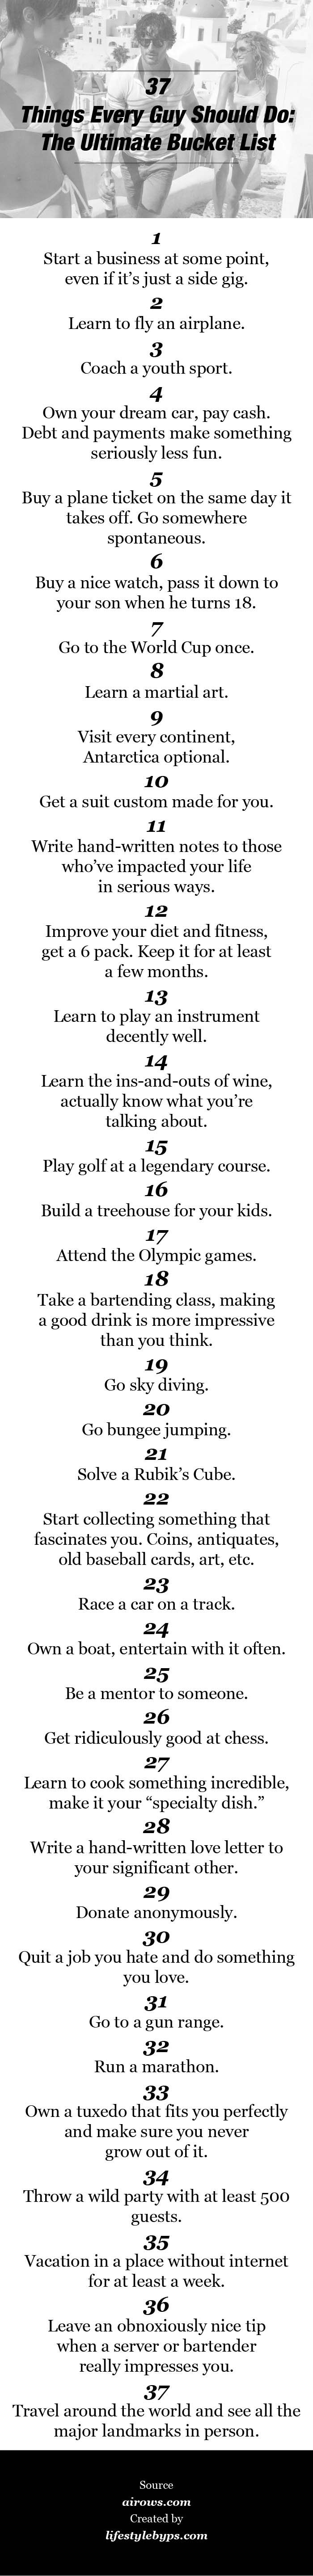 37 Things Every Man Should Do: The Ultimate Bucket List